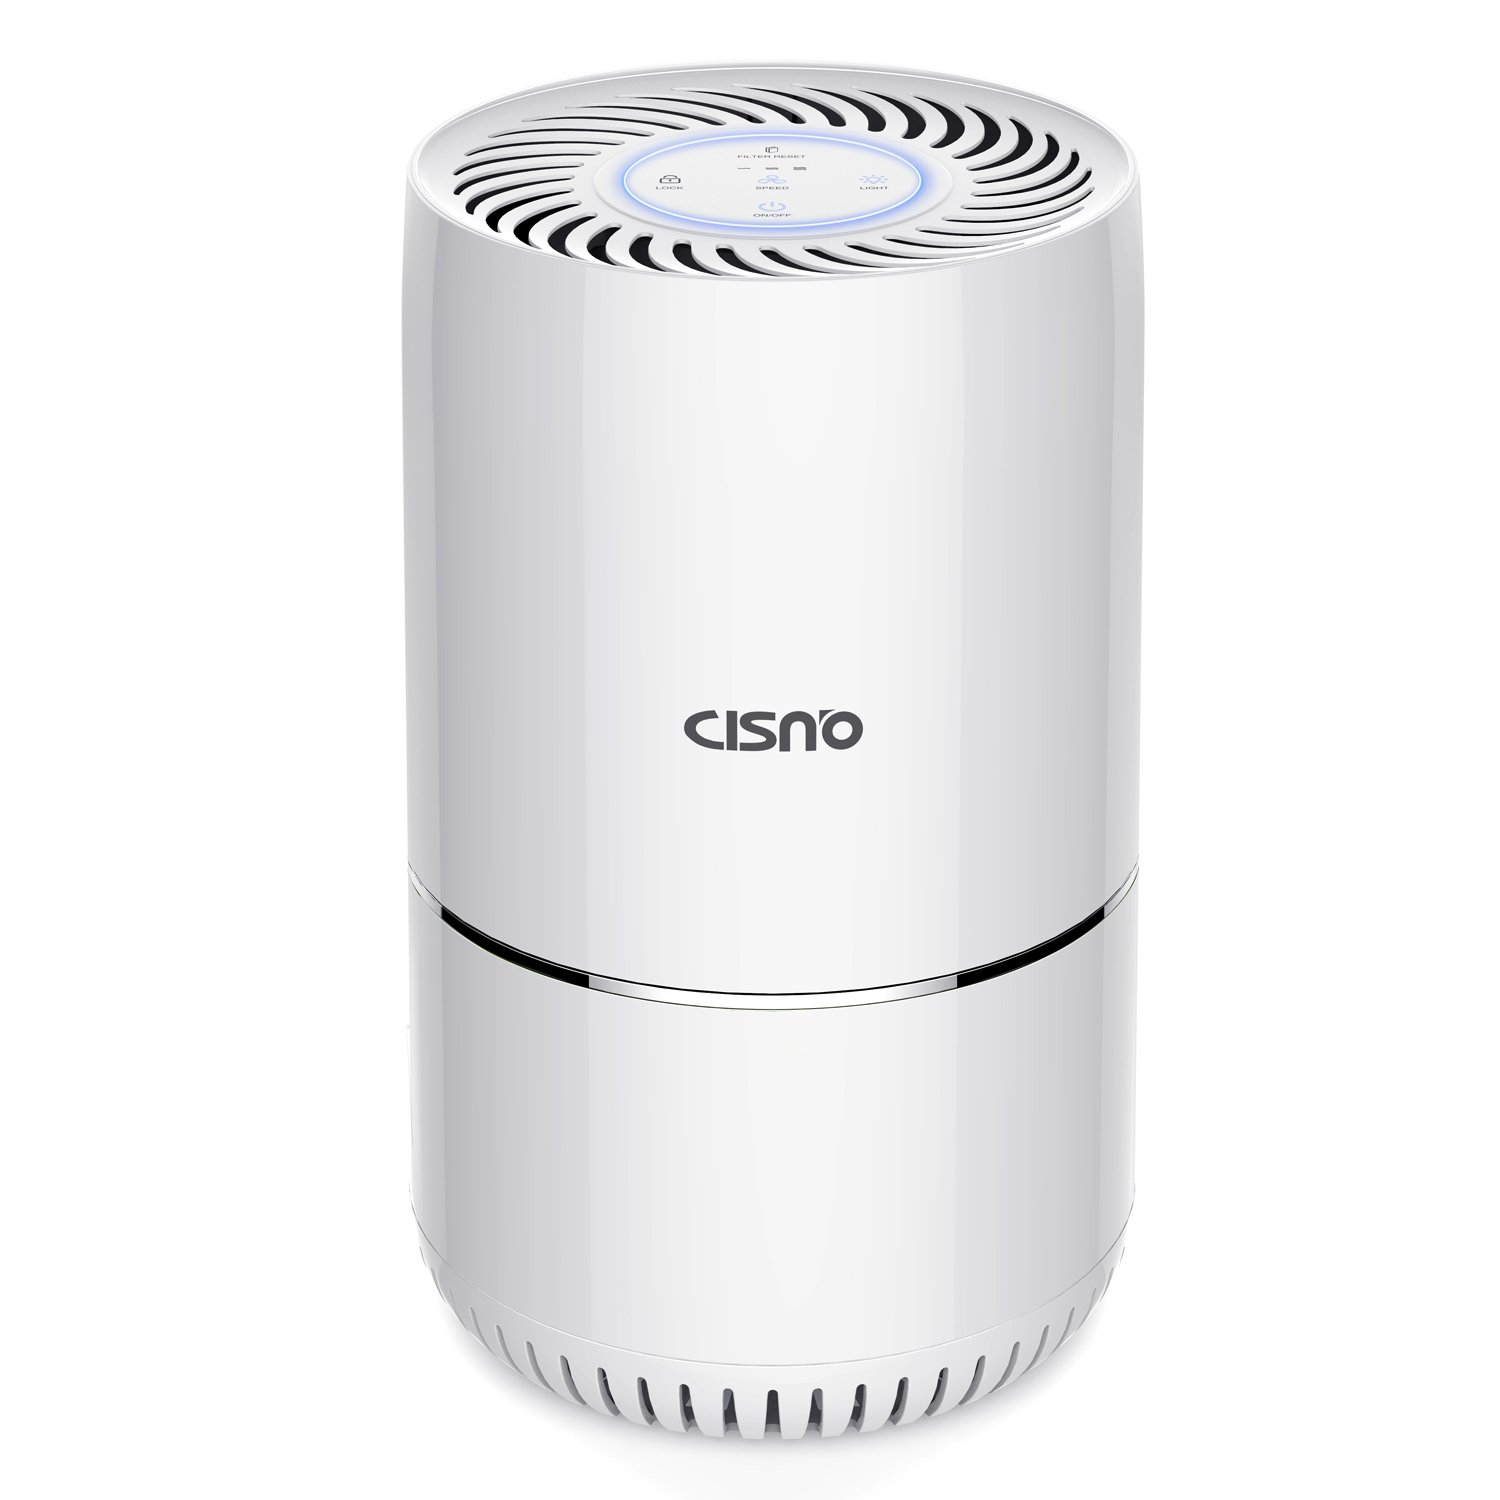 CISNO Air Purifier With True HEPA Filter, Powerful 3-Stage Filtration, Captures 99.99% Pollen, Smoke, Household Odor, Allergies, Pets Dander, Allergen Remover, Quiet For Home, US-120v